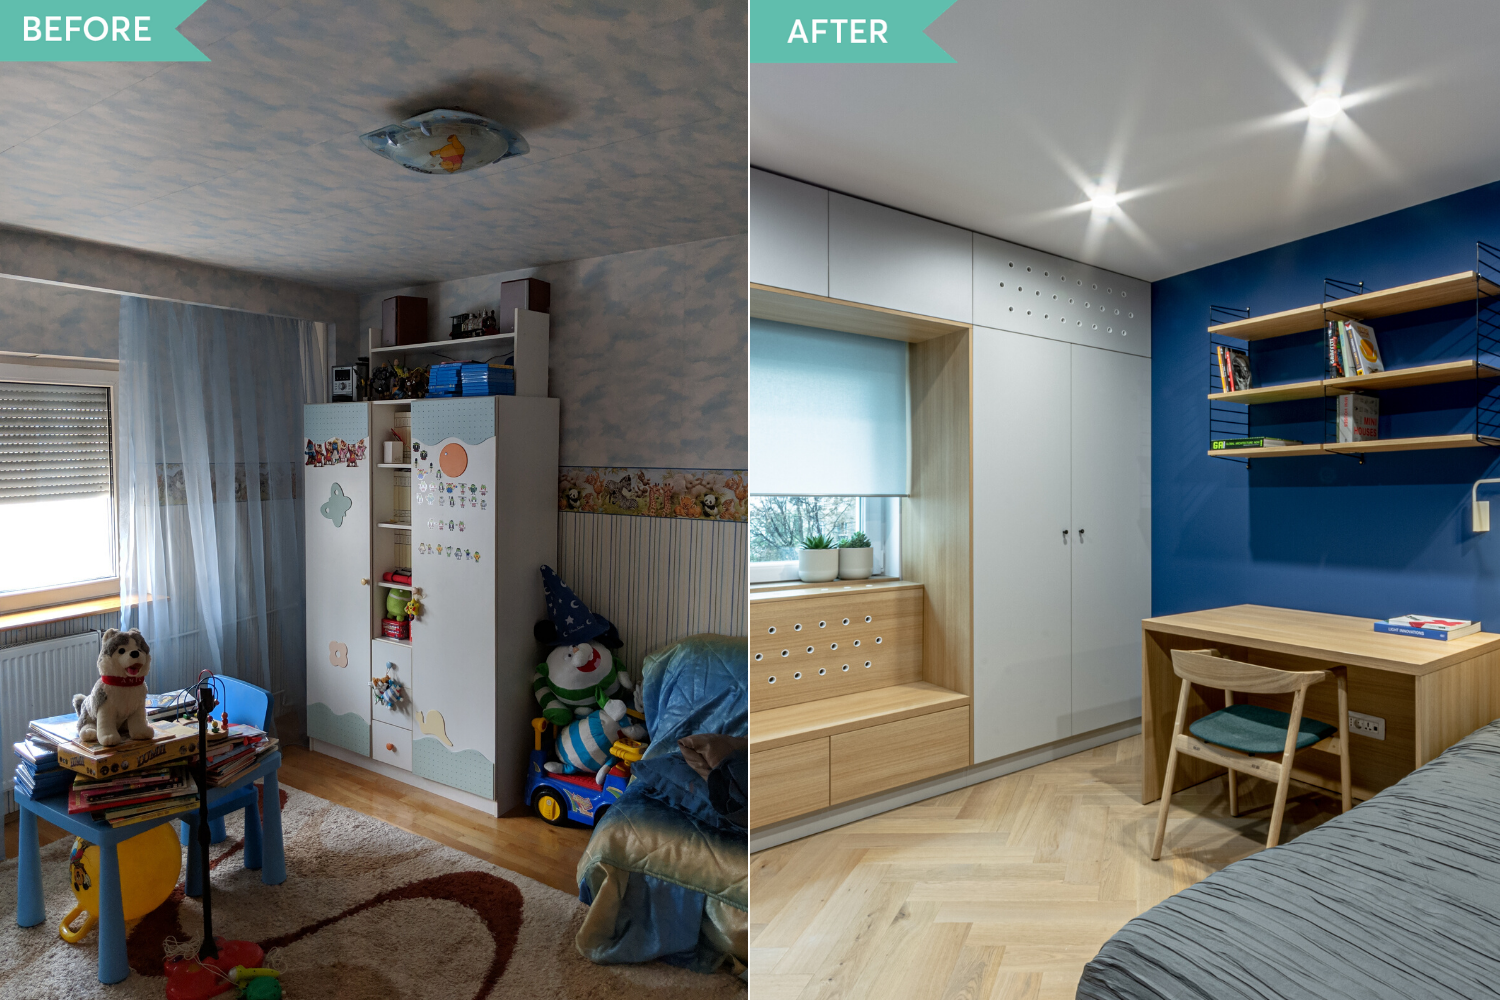 Before and after - amenajare camera copil cu perete albastru si window seat - Craftr (2)